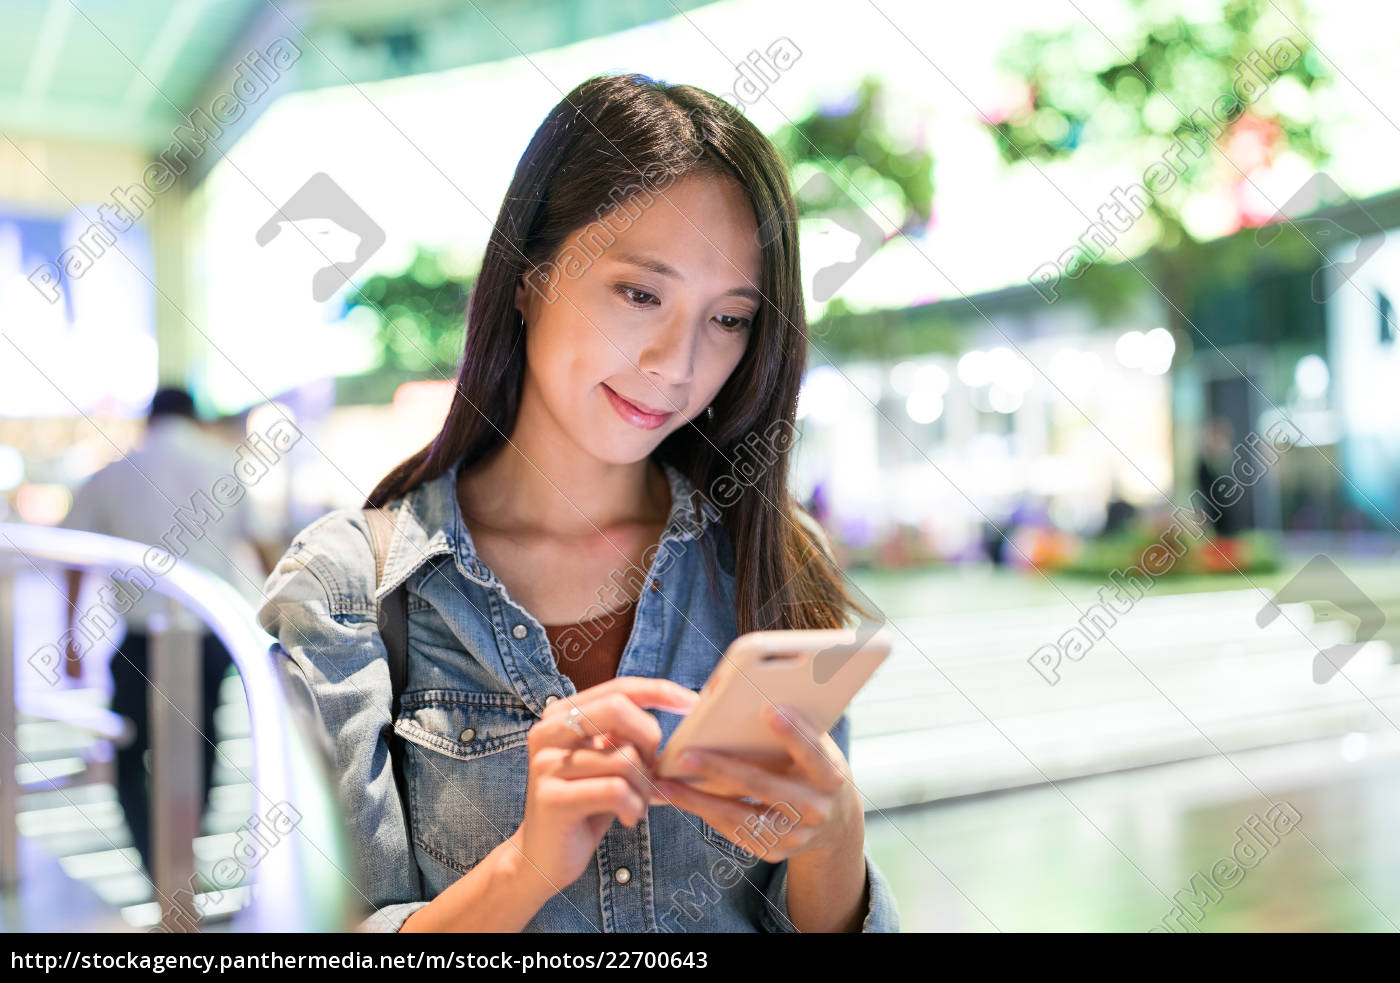 woman, use, of, mobile, phone, at - 22700643